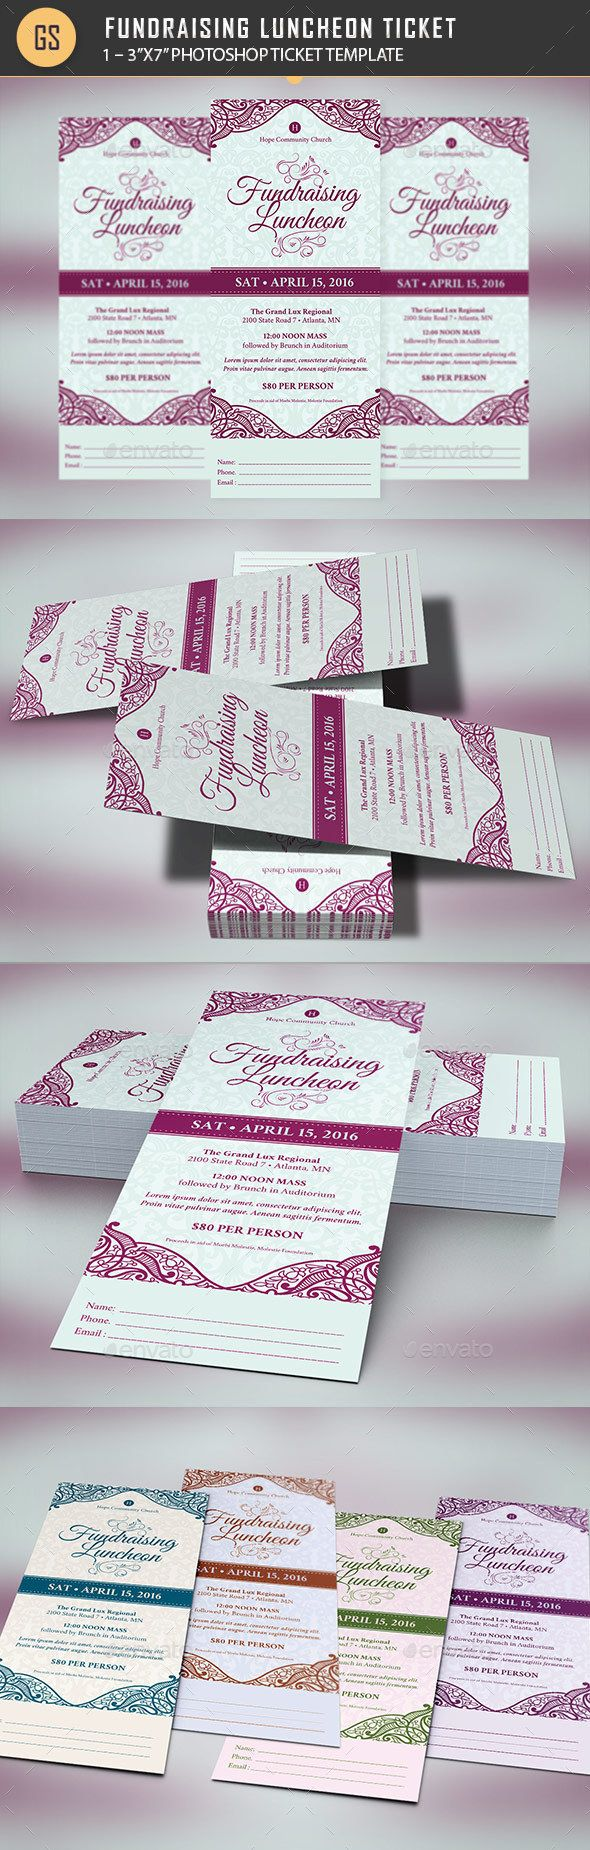 Fundraising Luncheon Ticket Template PSD. Download here: https://graphicriver.net/item/fundraising-luncheon-ticket-template/16709104?ref=ksioks